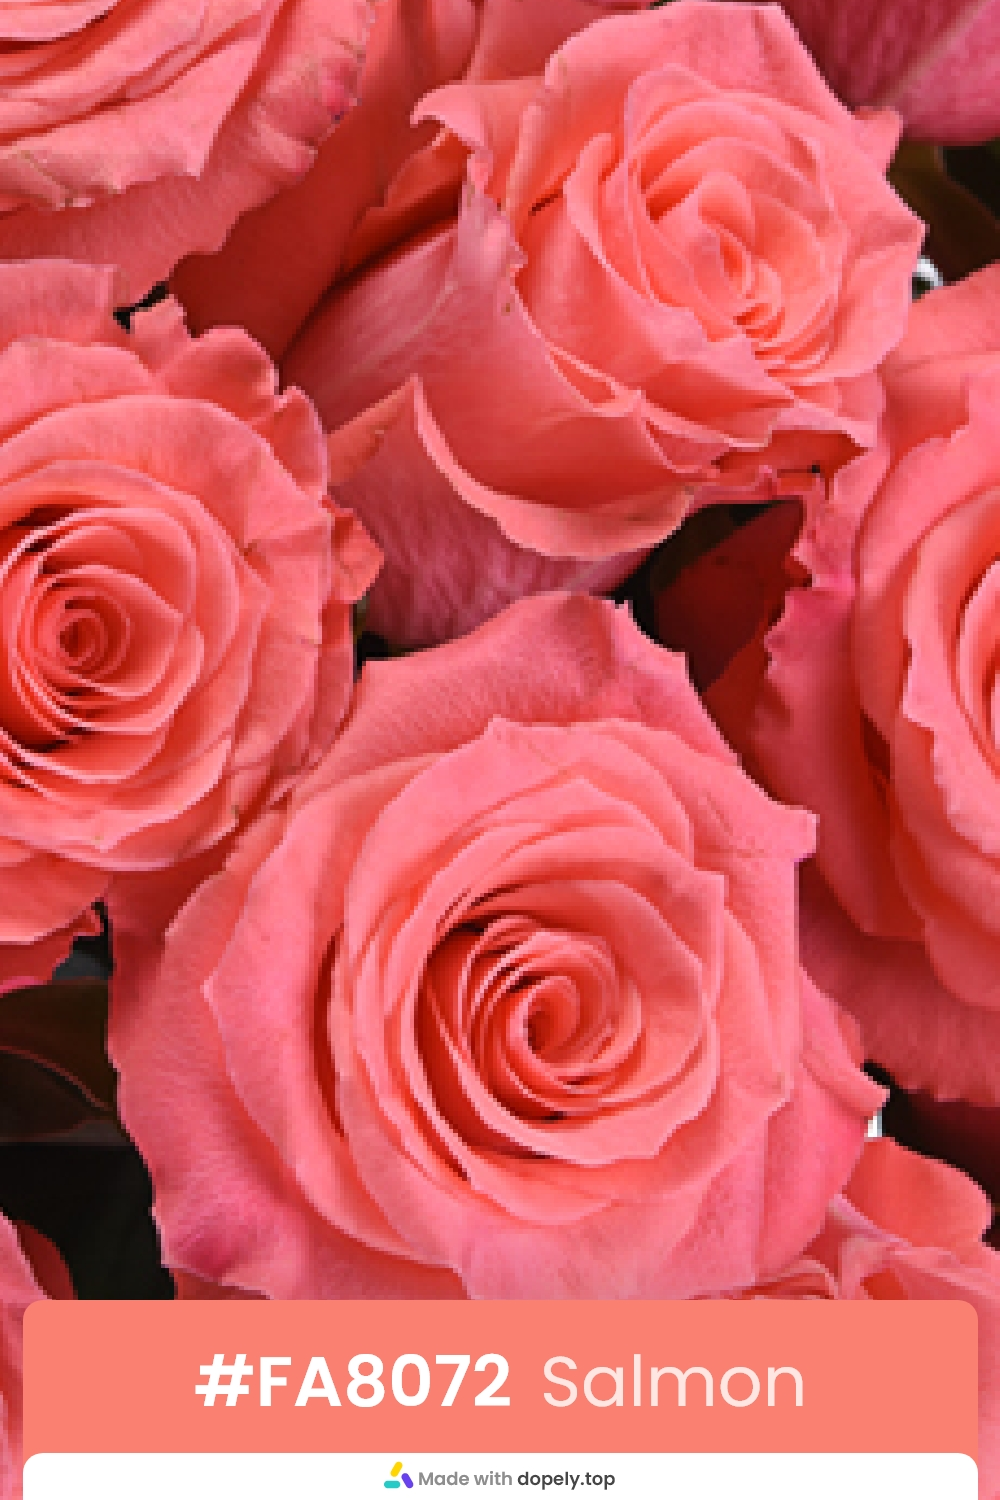 salmon color rose flower meaning with hex code